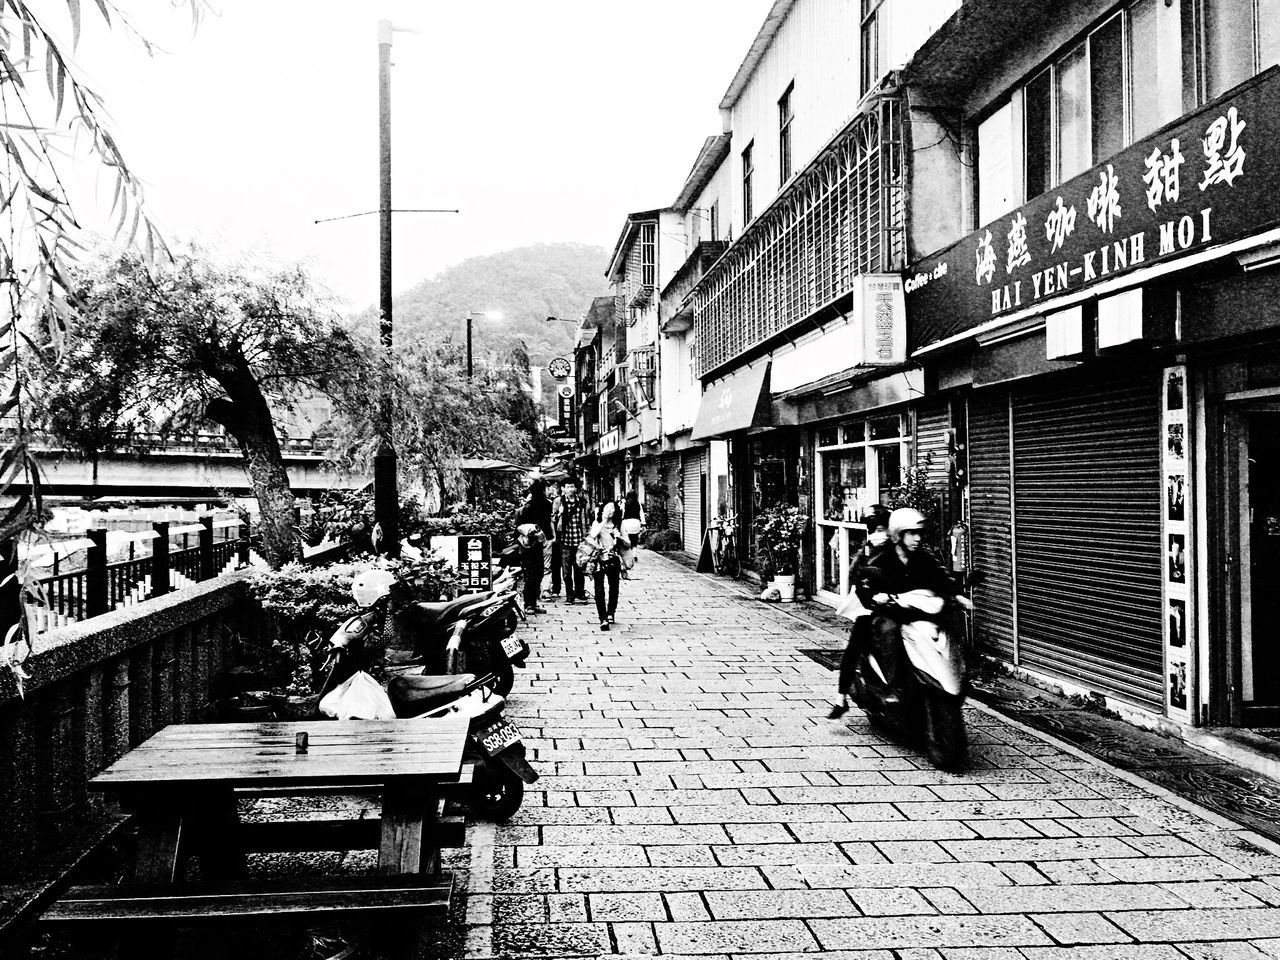 Walking Street? EyeEm Gallery EyeEm Best Shots - Black + White The Tourist Taking Photos Hello World Enjoying Life How Do We Build The World? TOWNSCAPE Street Path People Photography Stone Tree Sanxia